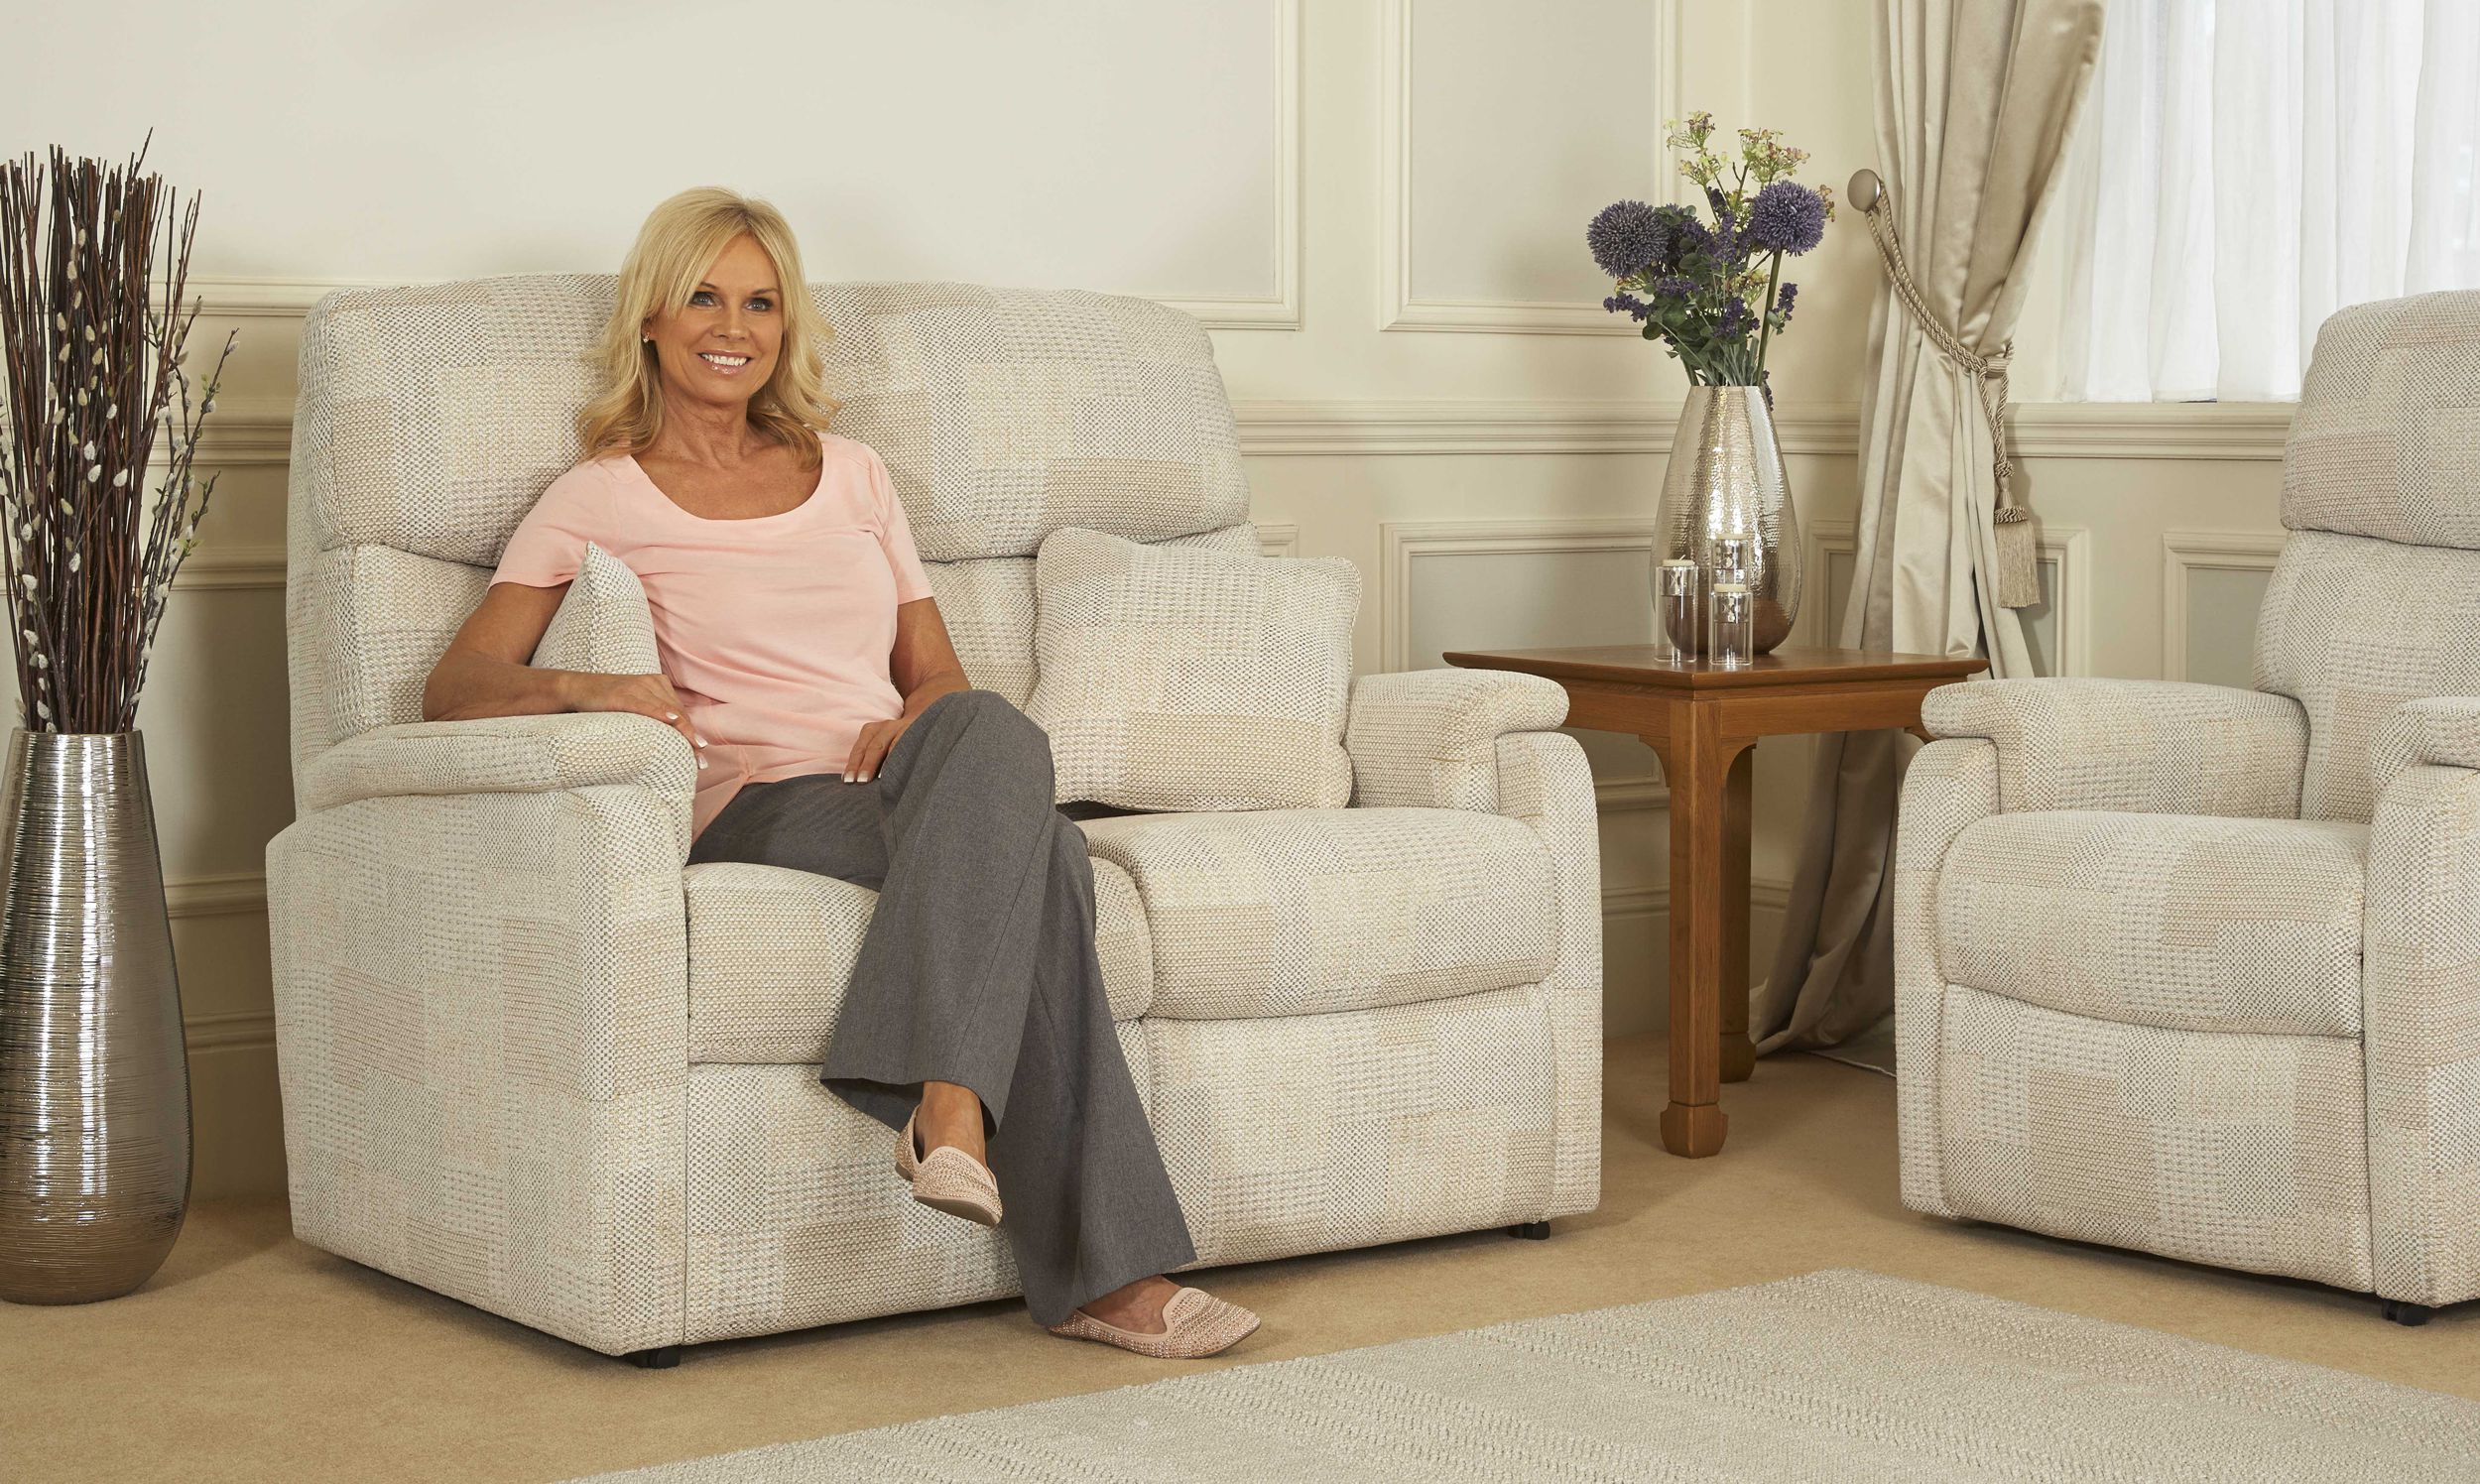 Arun Furnishers Ltd based in Littlehampton, West Sussex supply quality furniture for the home - sofas & suites